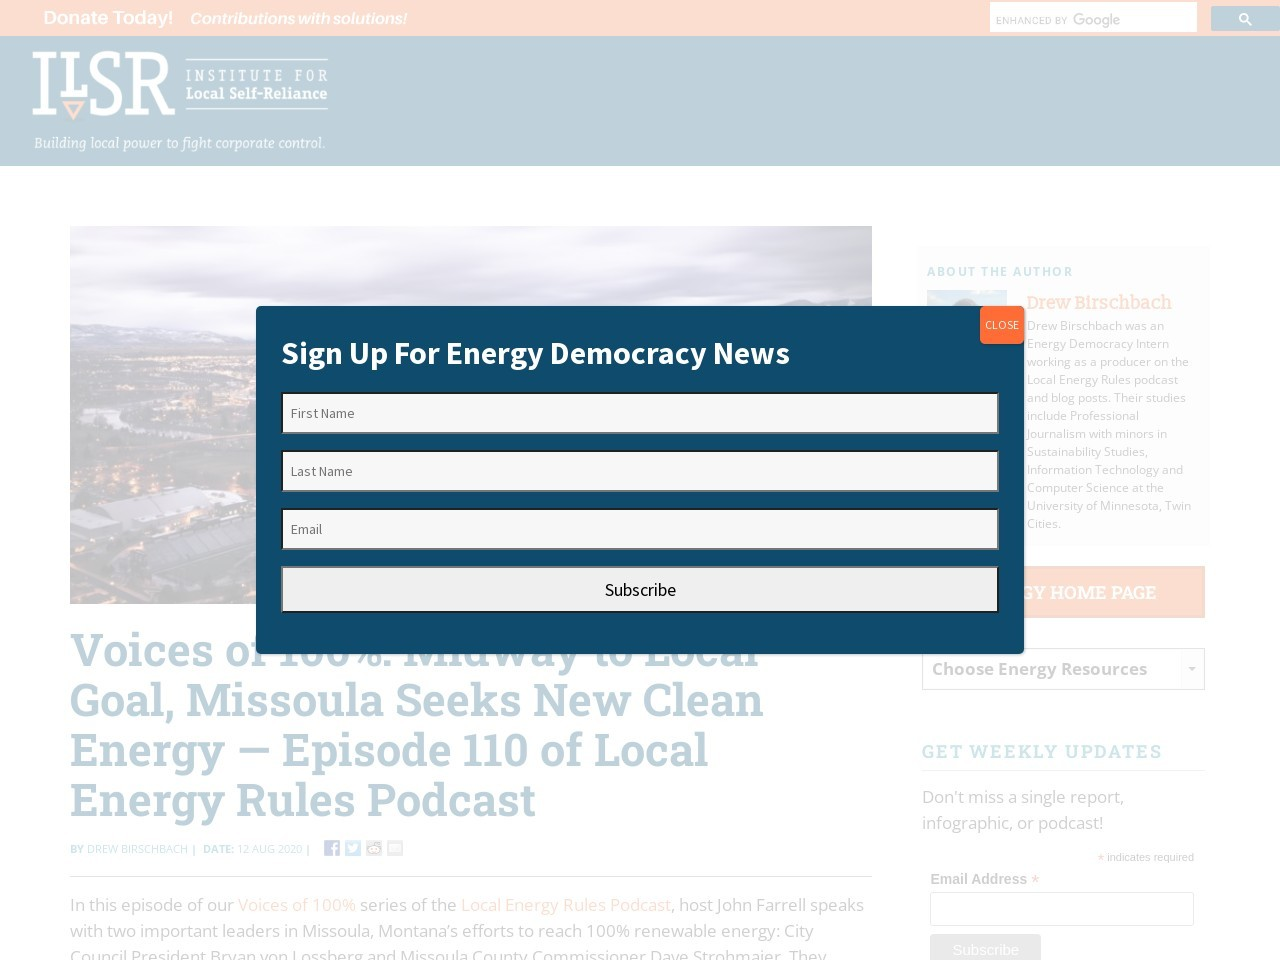 Voices of 100%: Midway to Local Goal, Missoula Seeks New Clean Energy — Episode 110 of Local Energy Rules Podcast